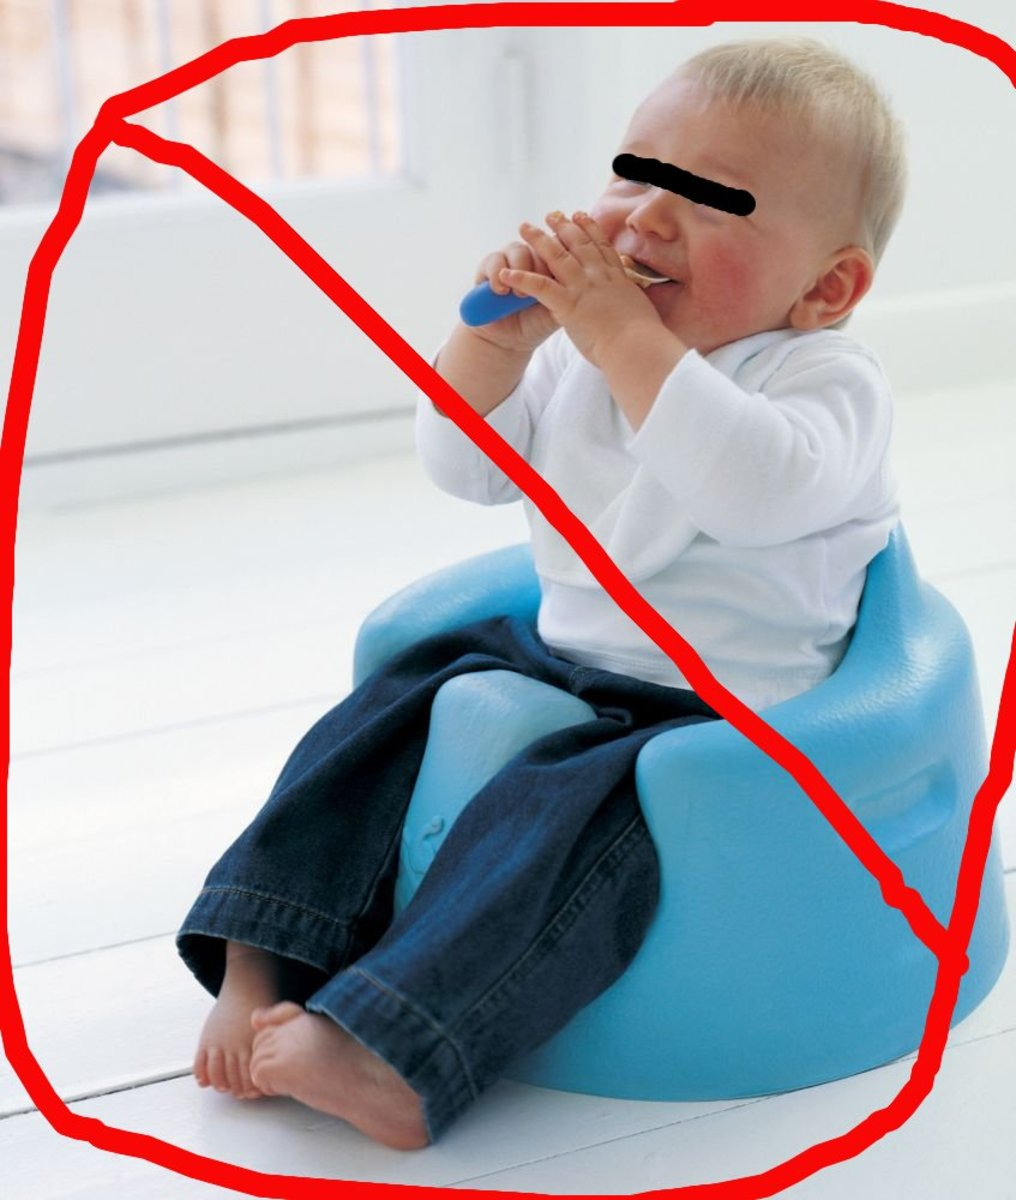 Bumbo Recall Baby Chair Seat Is Not A Baby Sitter